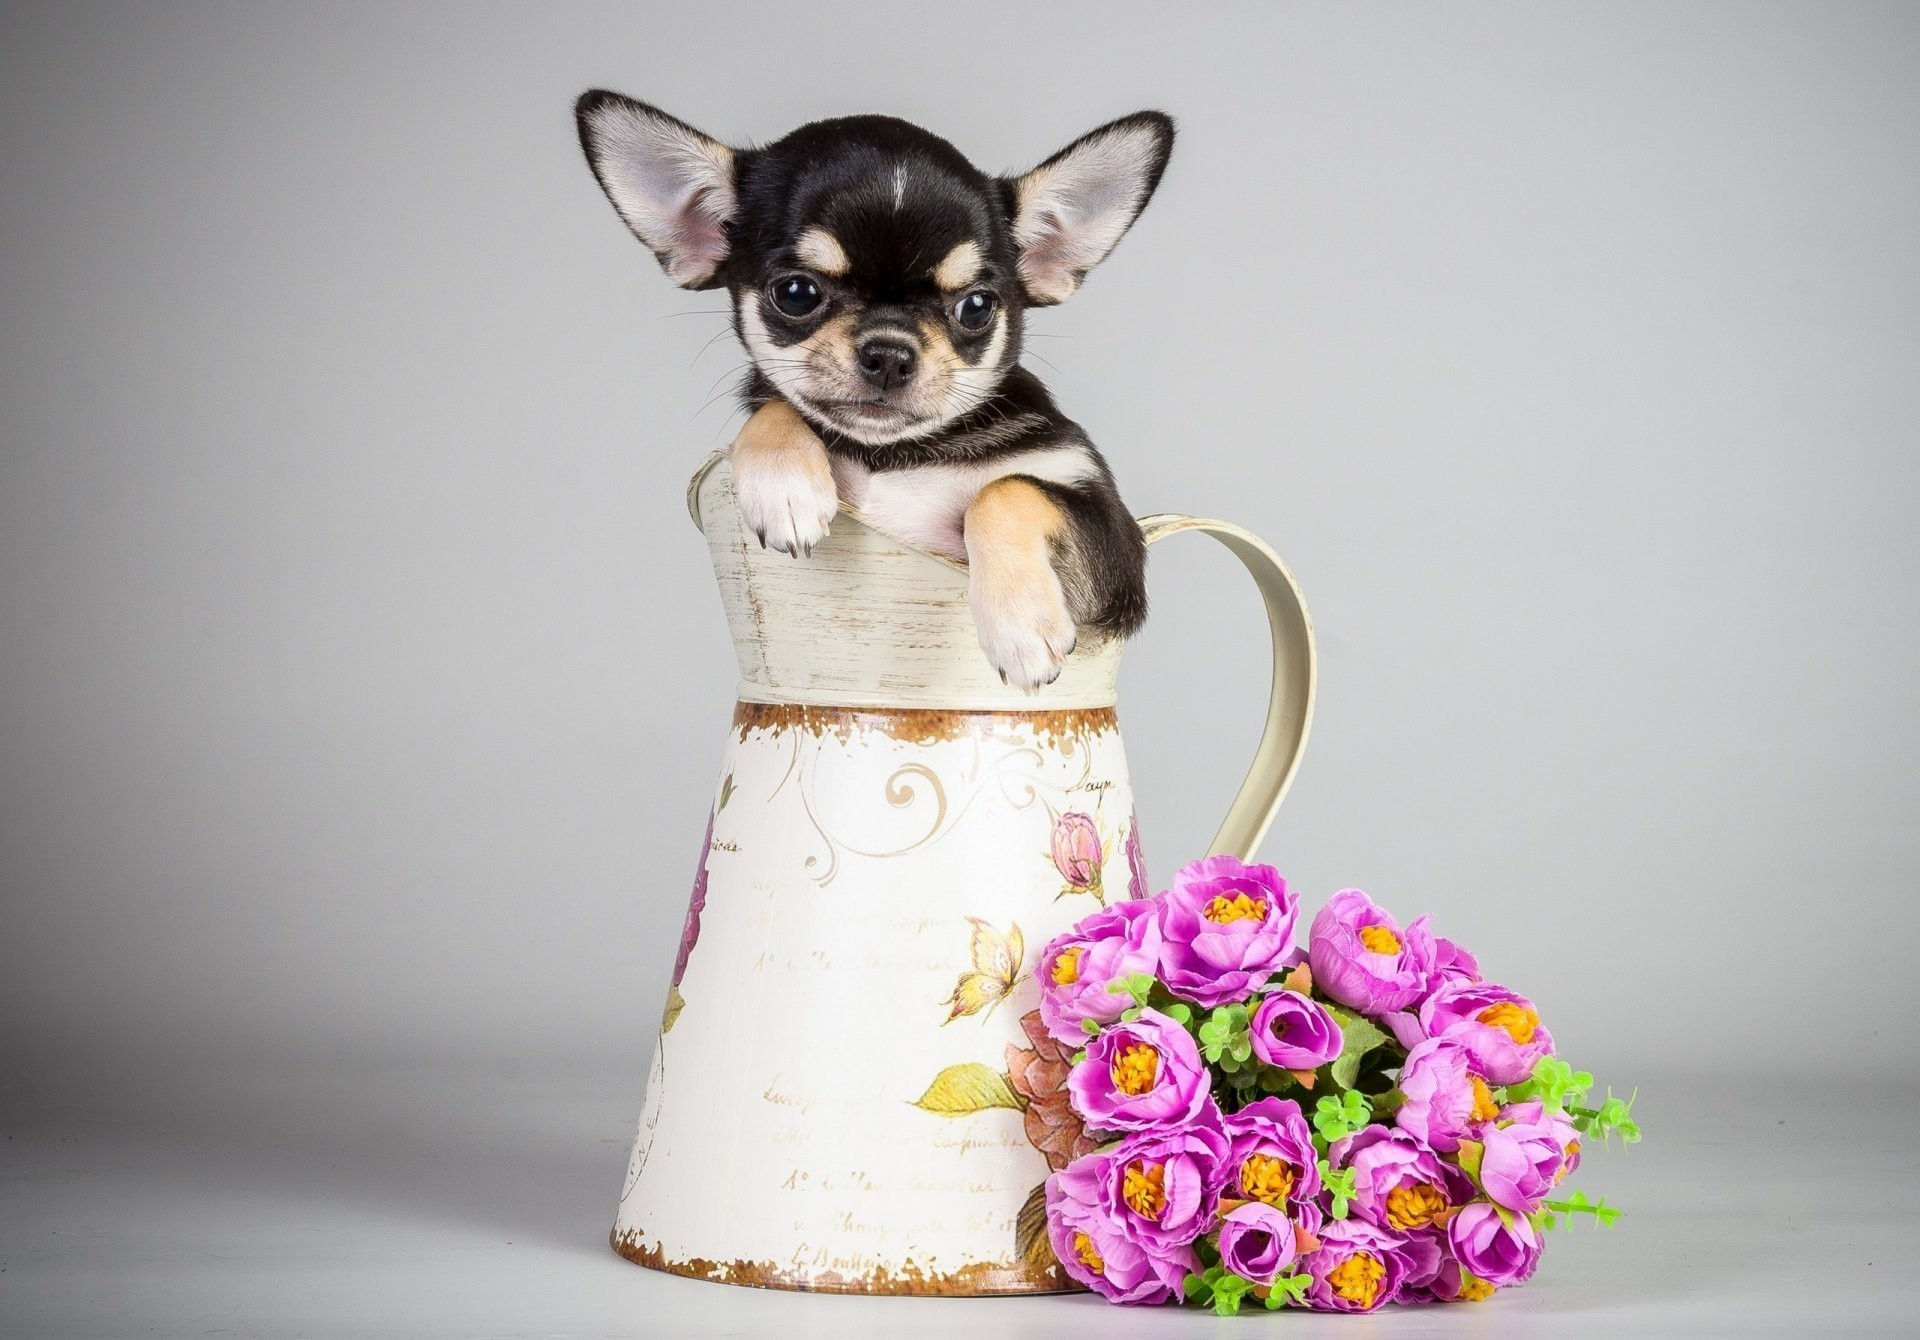 Puppies And Flowers Wallpapers 63 Images